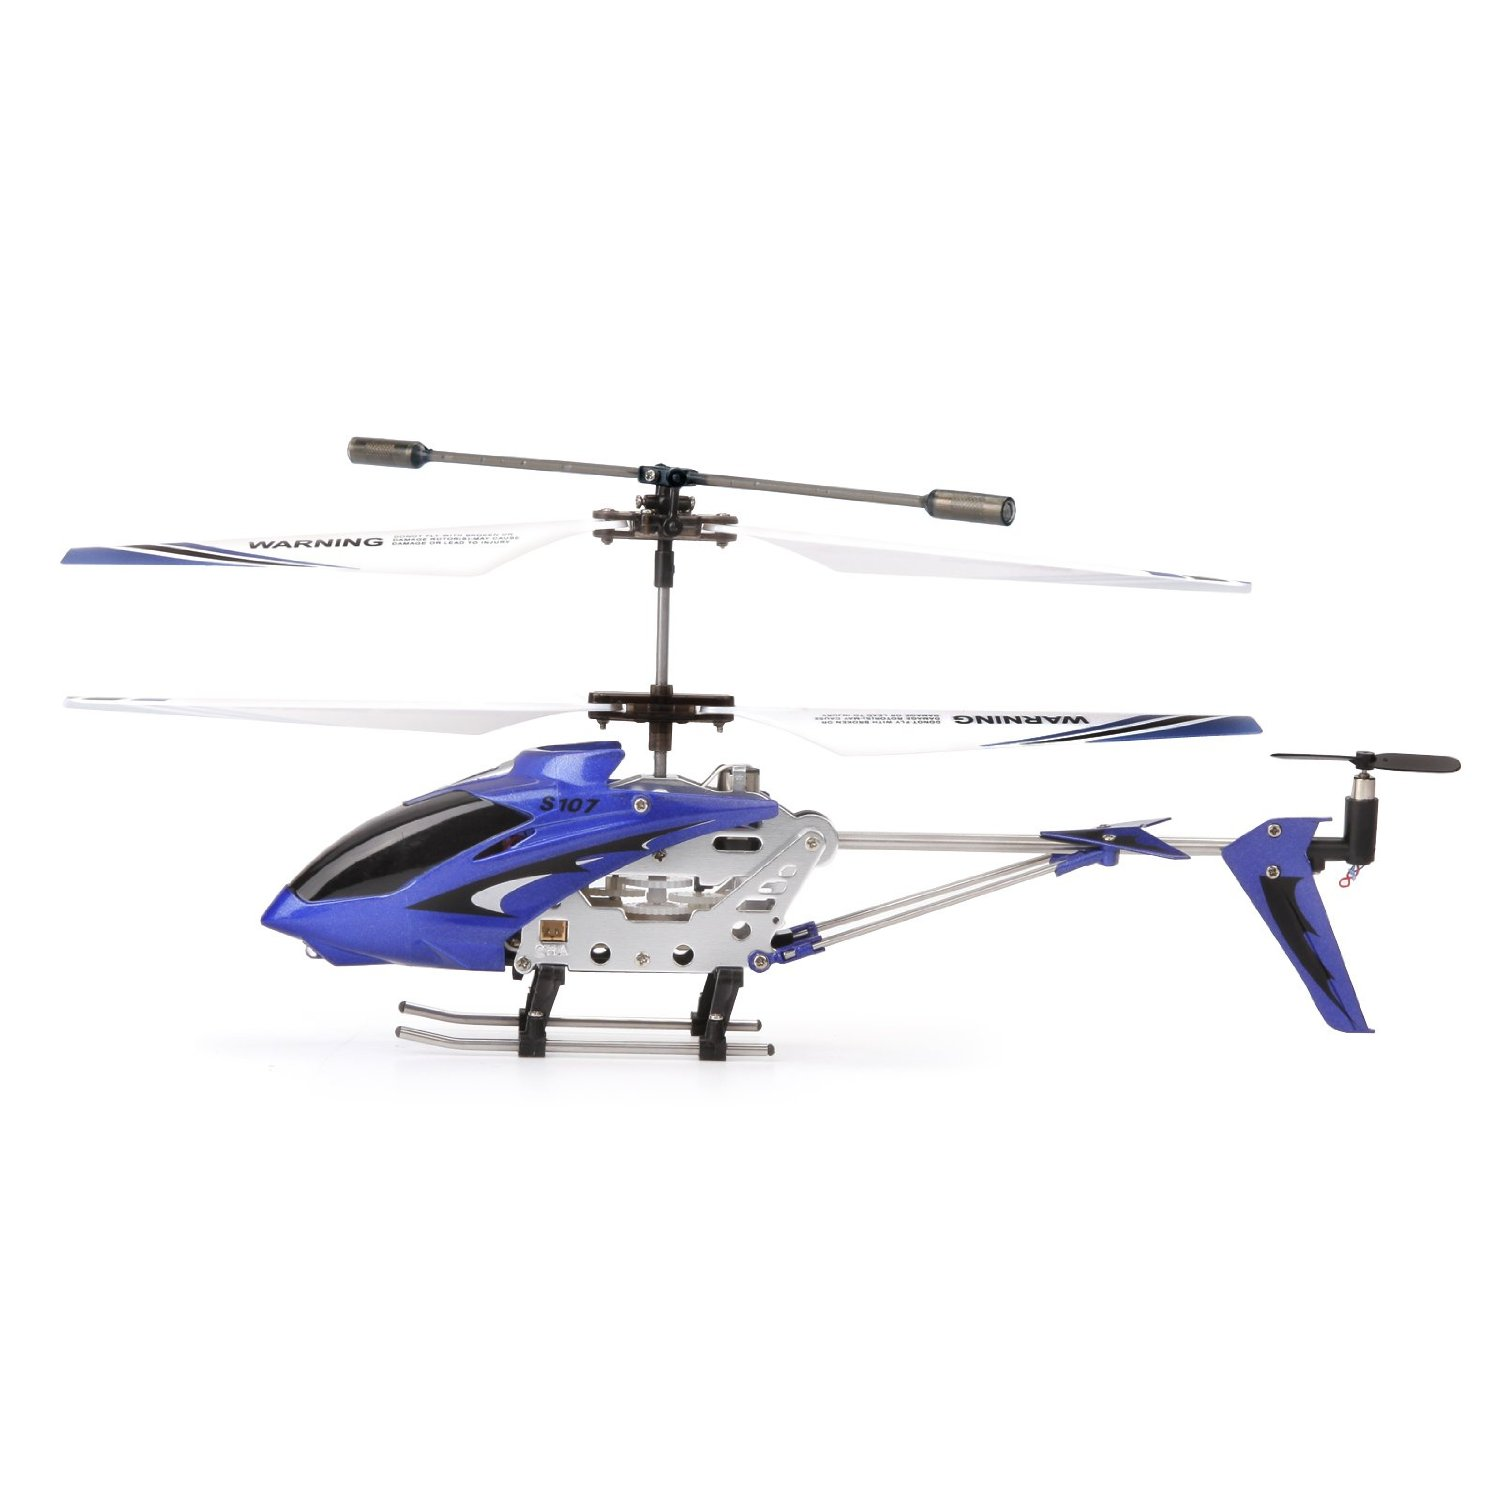 cheerwing s107 s107g helicopter phantom 3 5ch metal remote. Black Bedroom Furniture Sets. Home Design Ideas